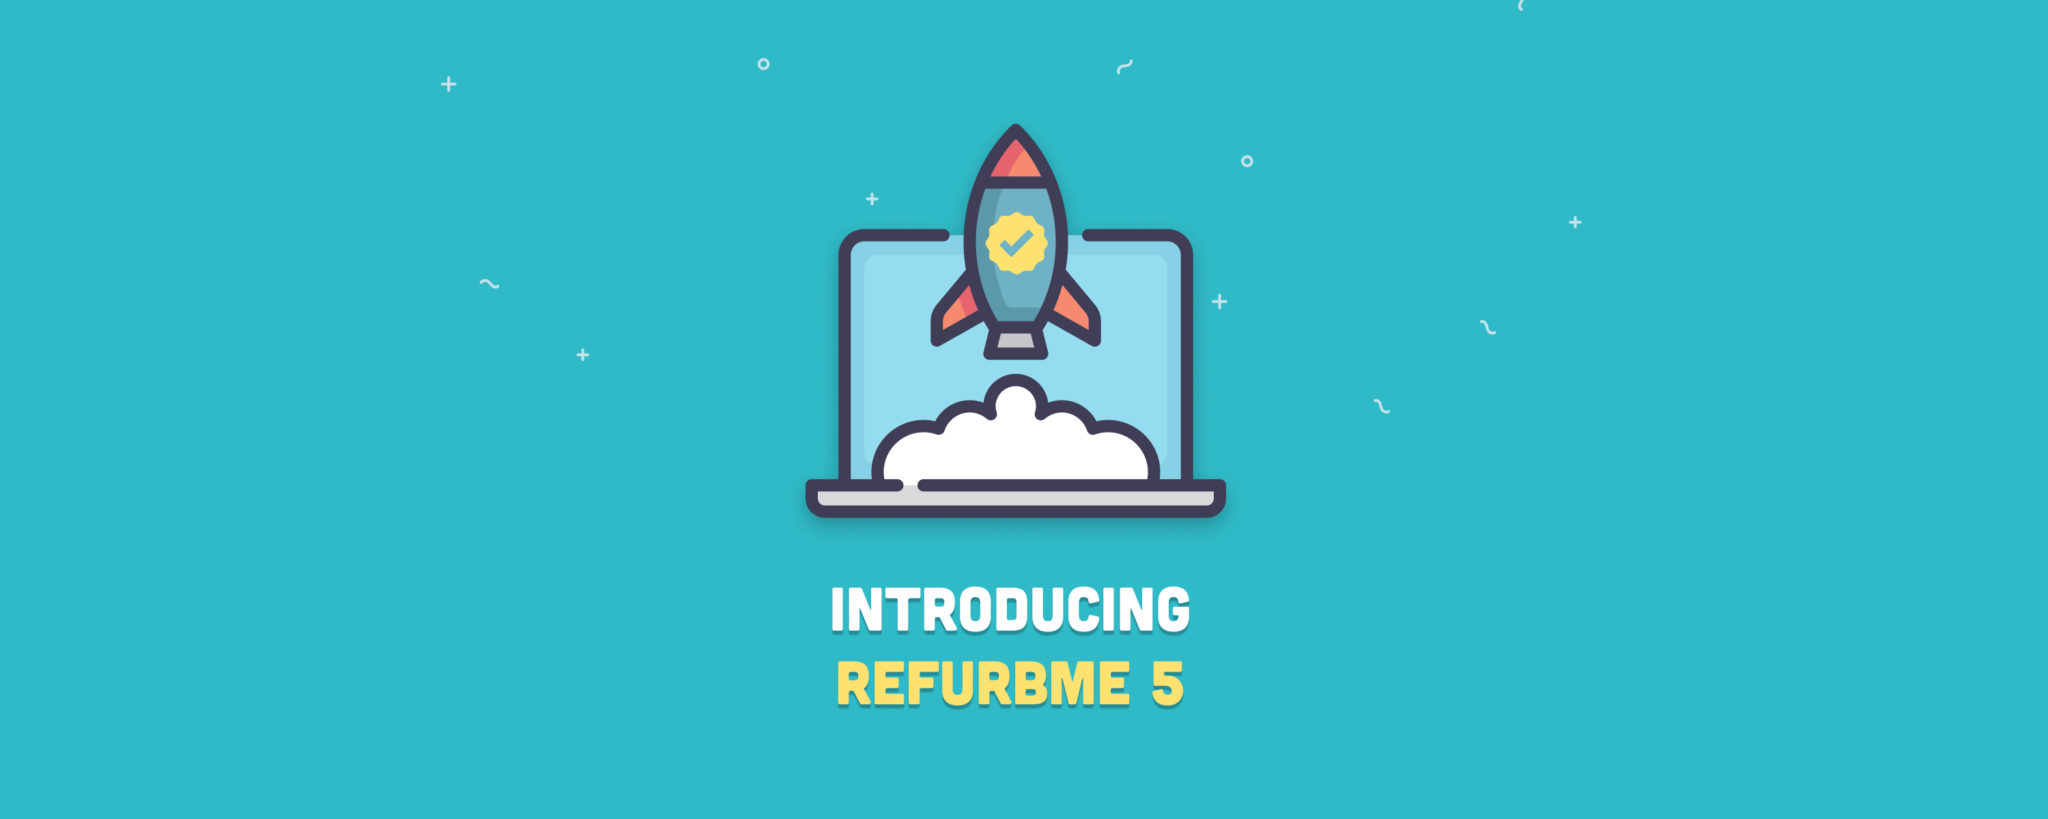 Launching RefurbMe 5: What's new?